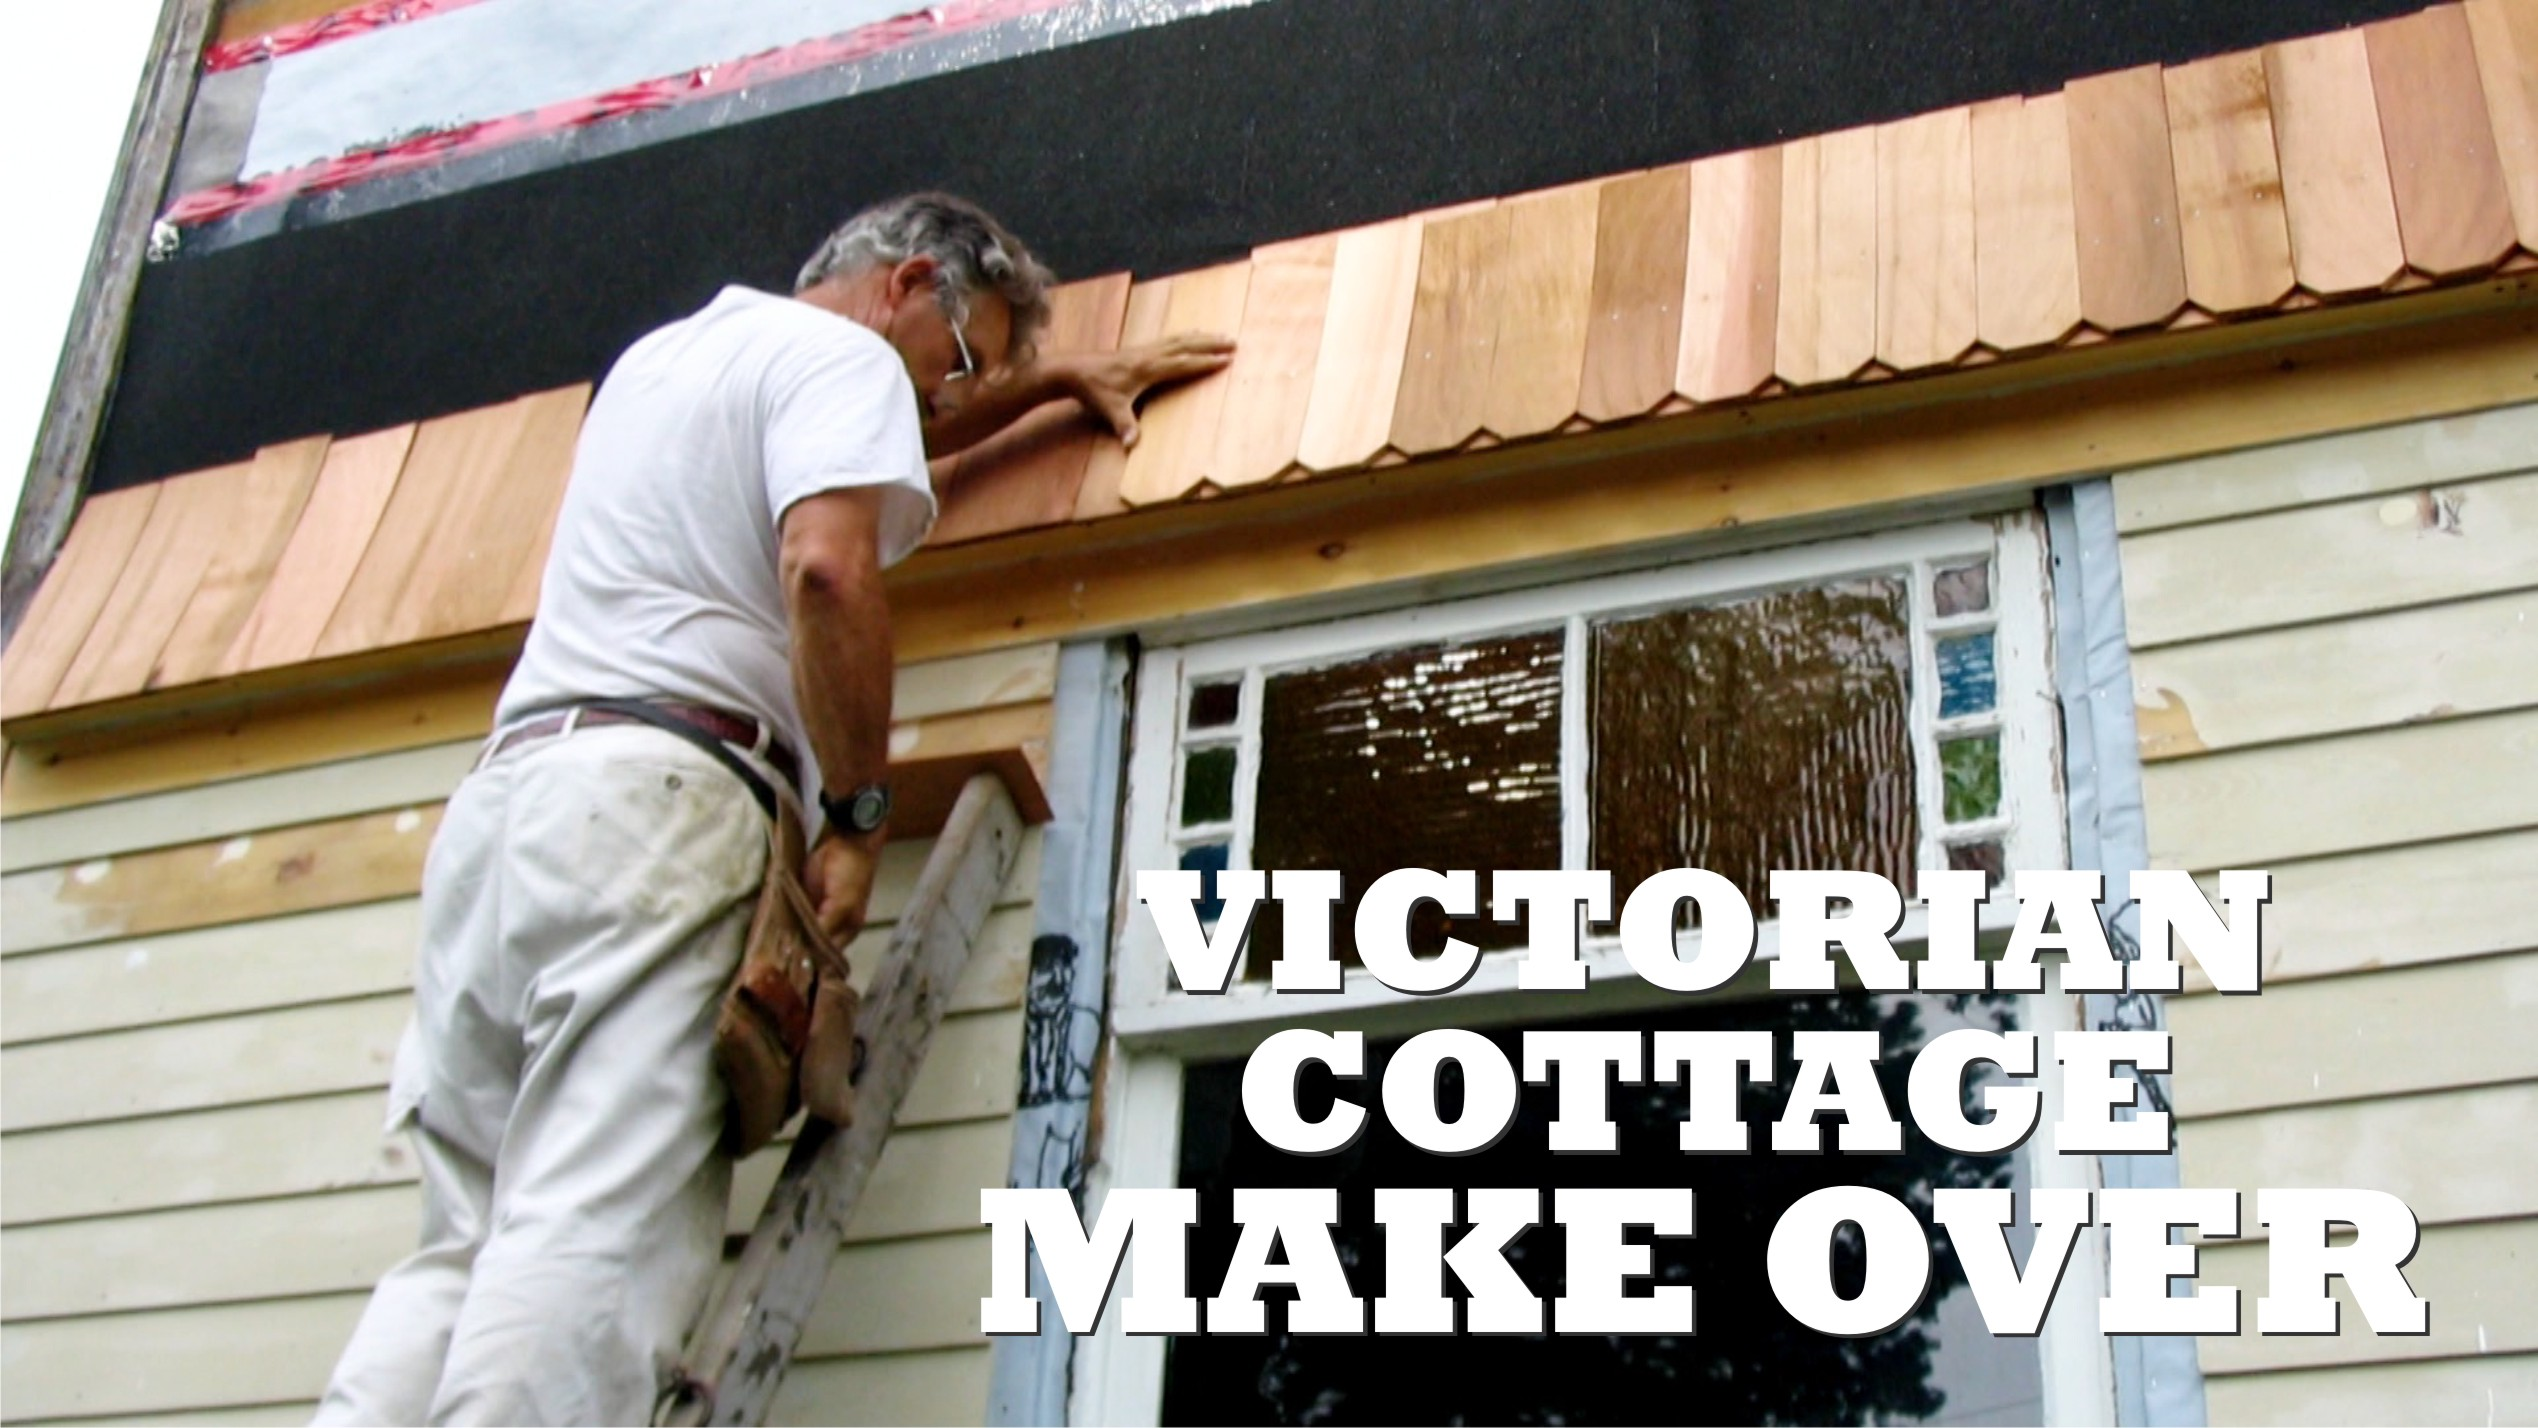 Victorian Cottage Make Over